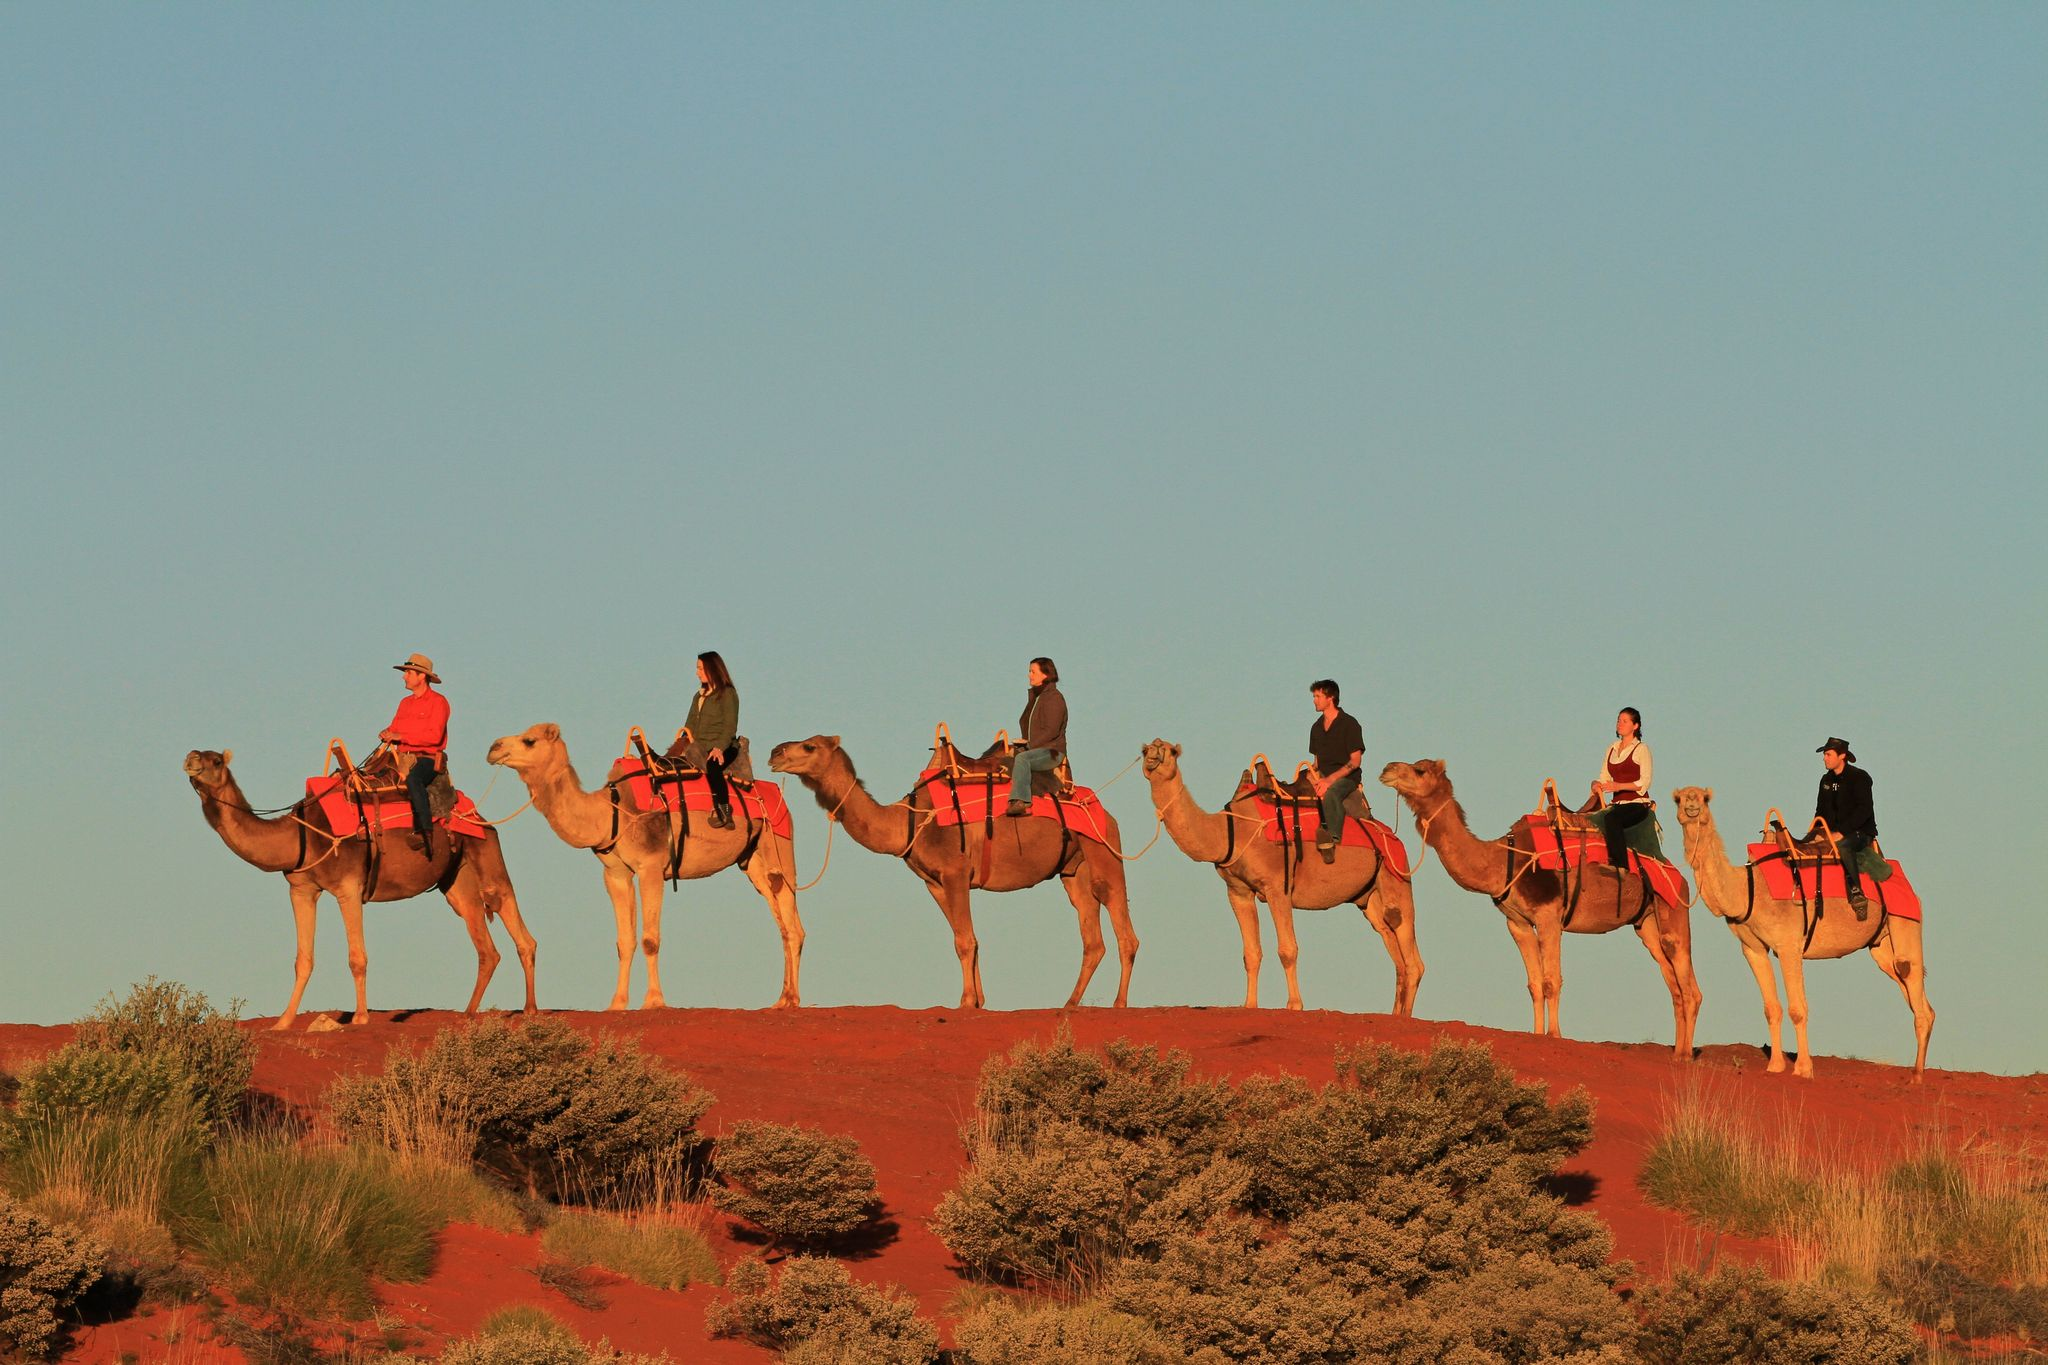 line of six camels and riders atop a sand dune in Australia